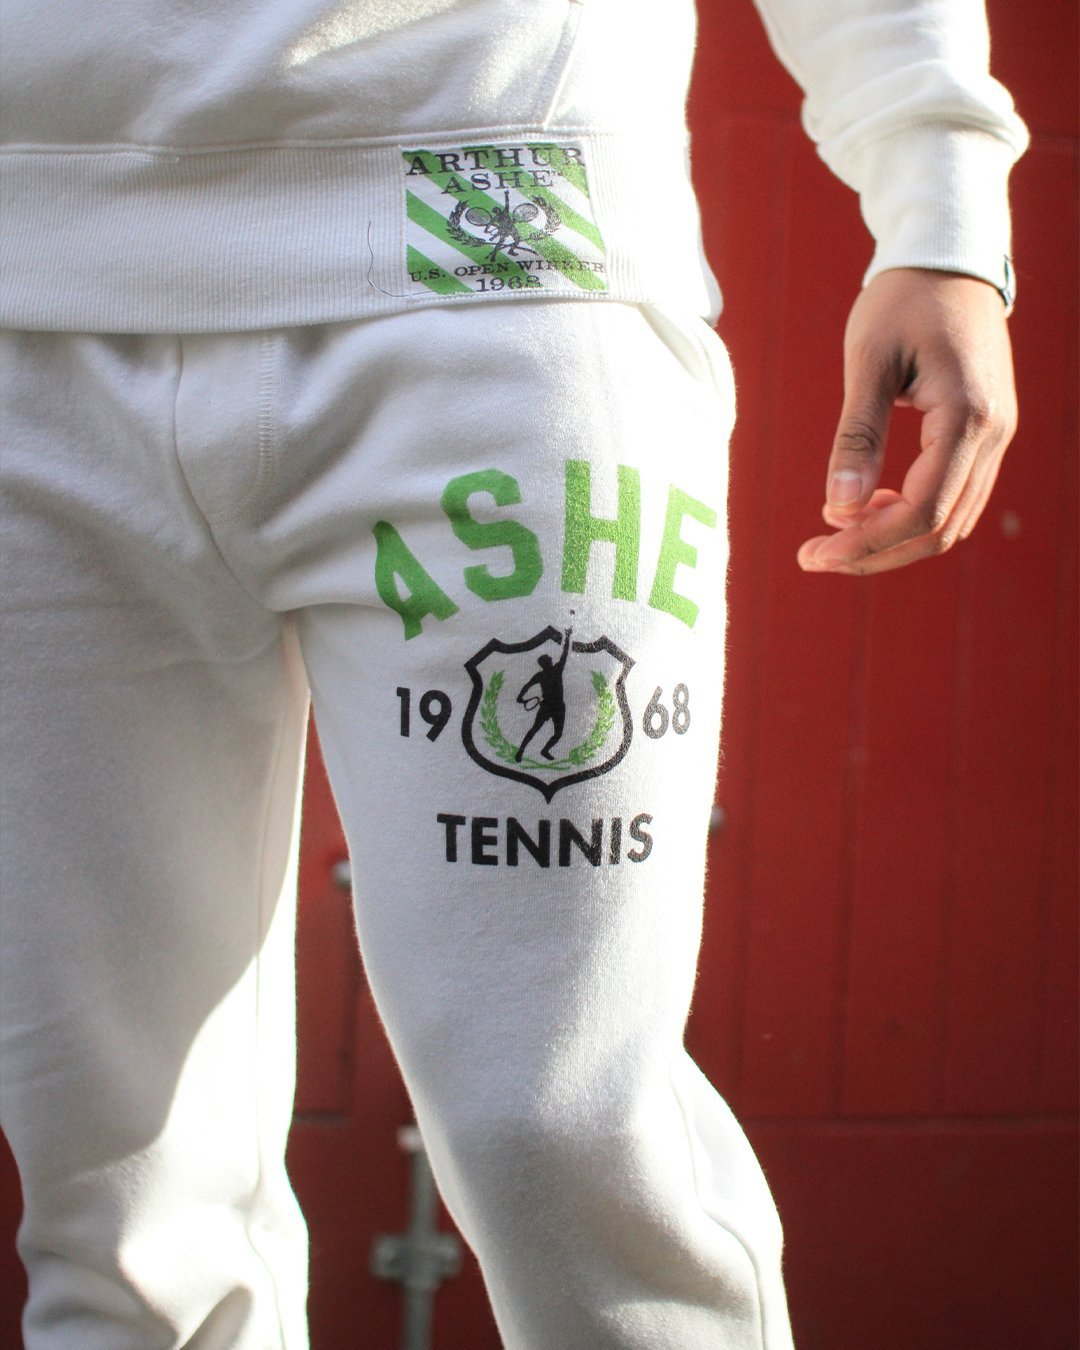 Arthur Ashe Ground Breakers Sweatpants - Copasetic Clothing Ltd. dba Roots of Fight